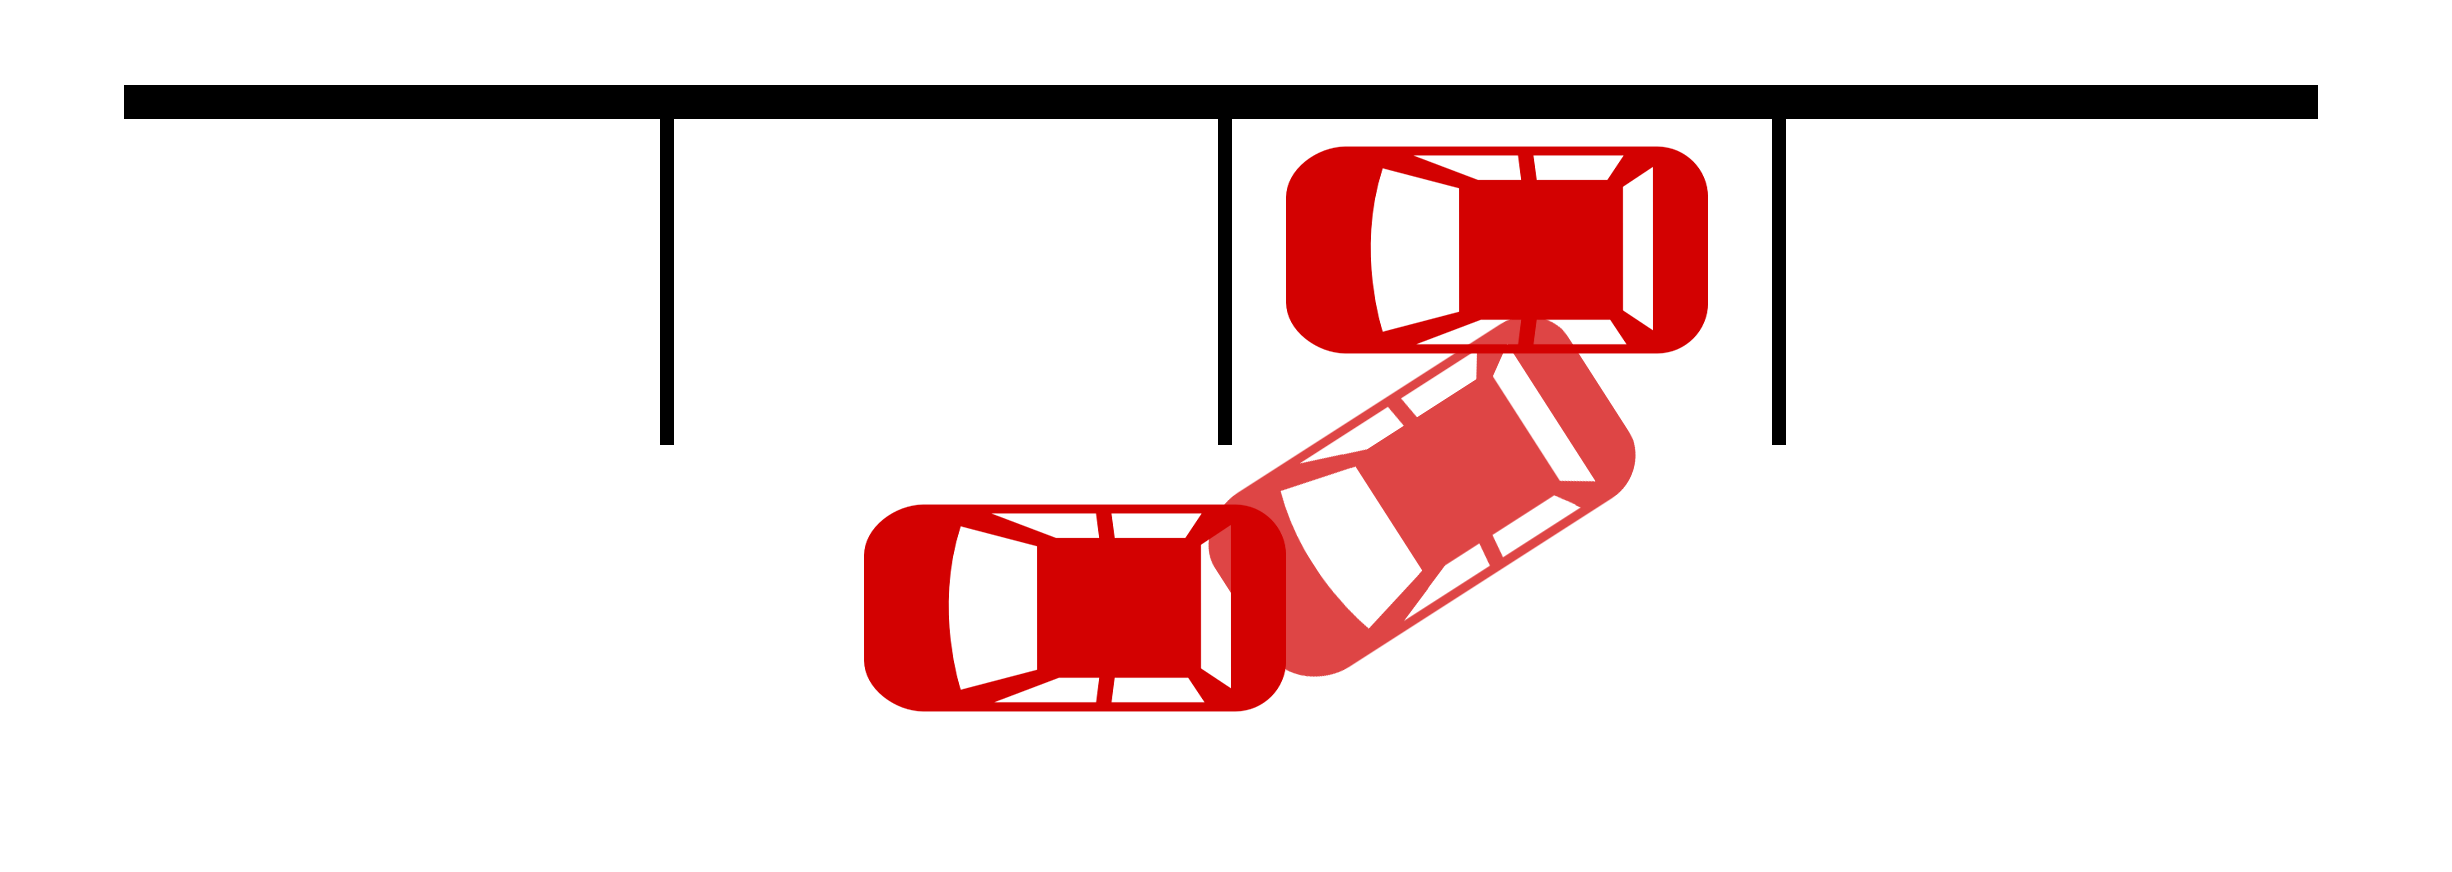 Auto Parking System.png